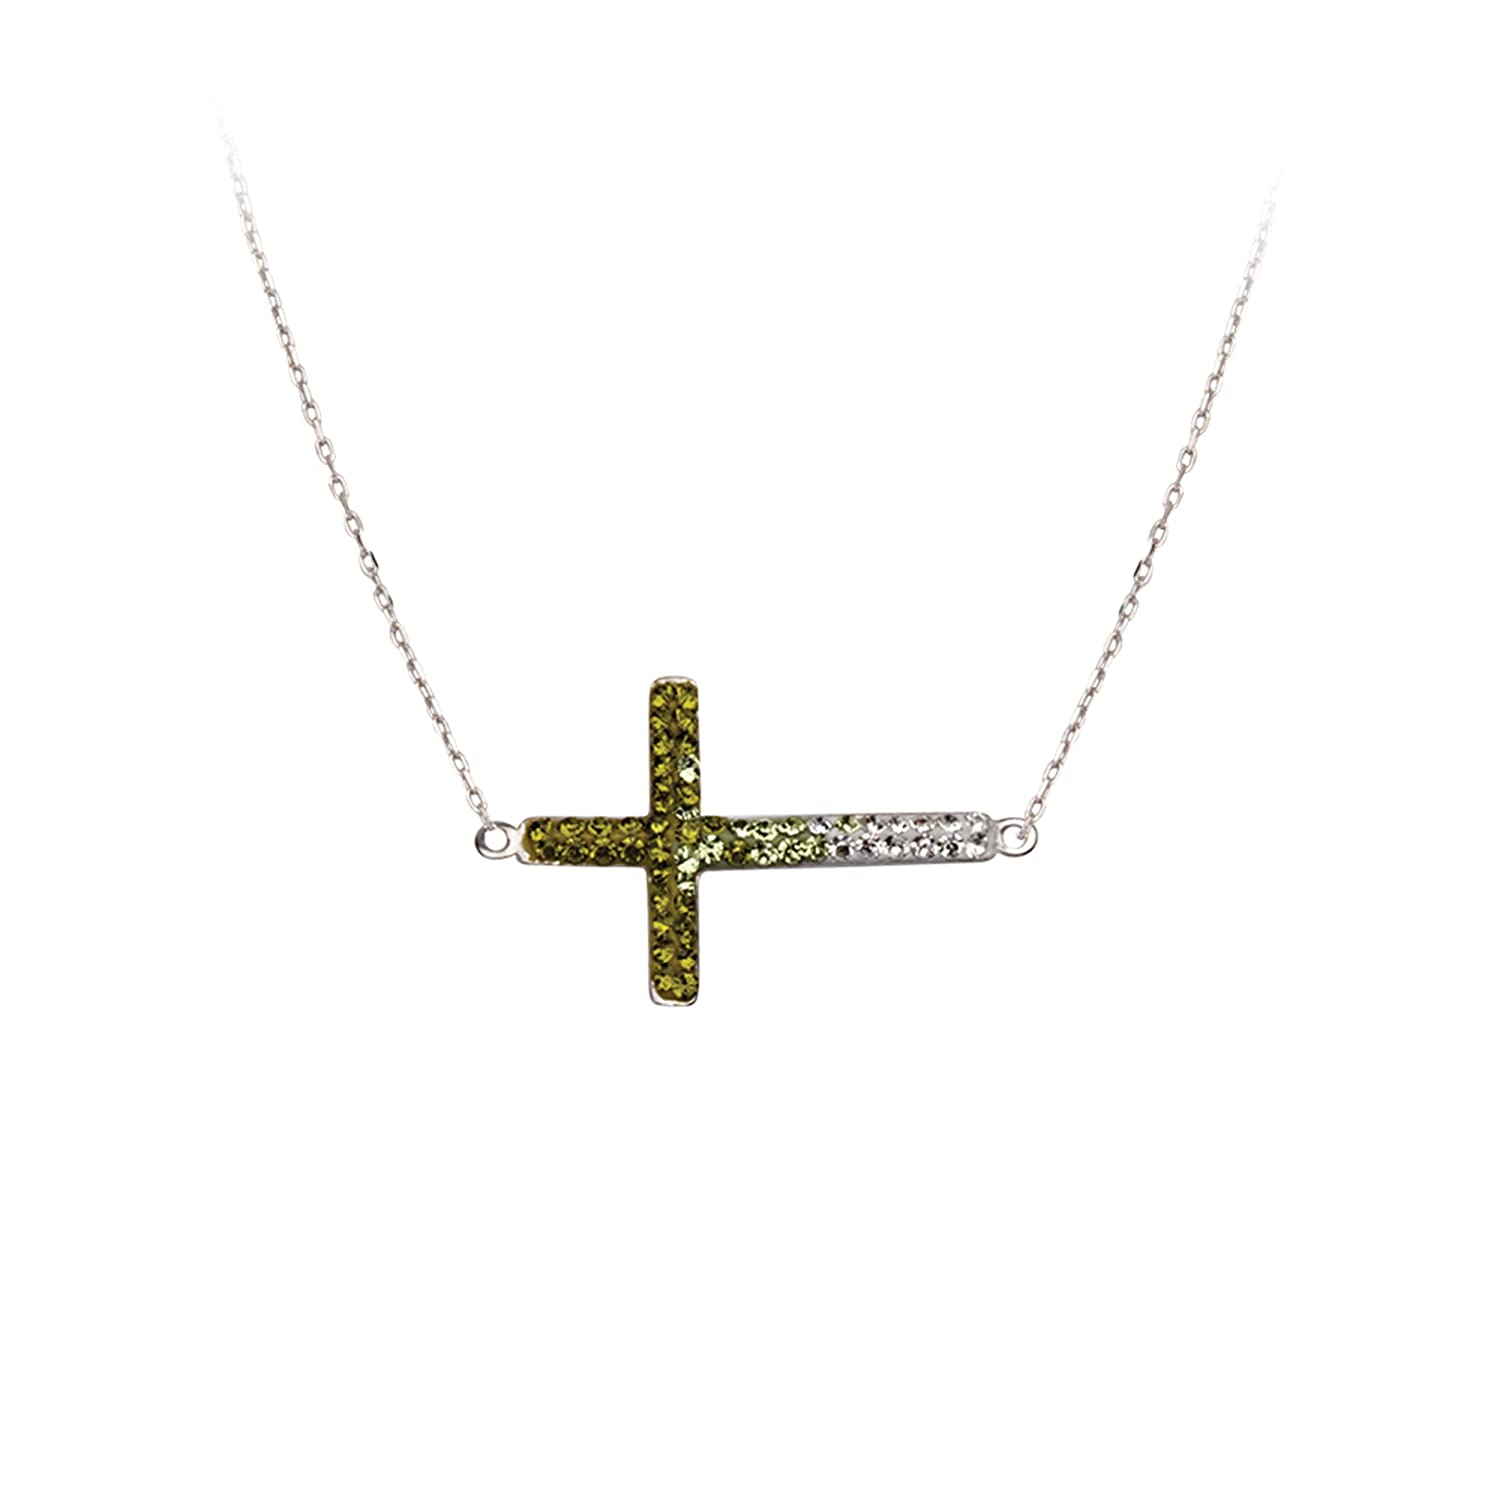 Ss Cz Graduated Color Sideways Cross DiamondJewelryNY Silver Pendant